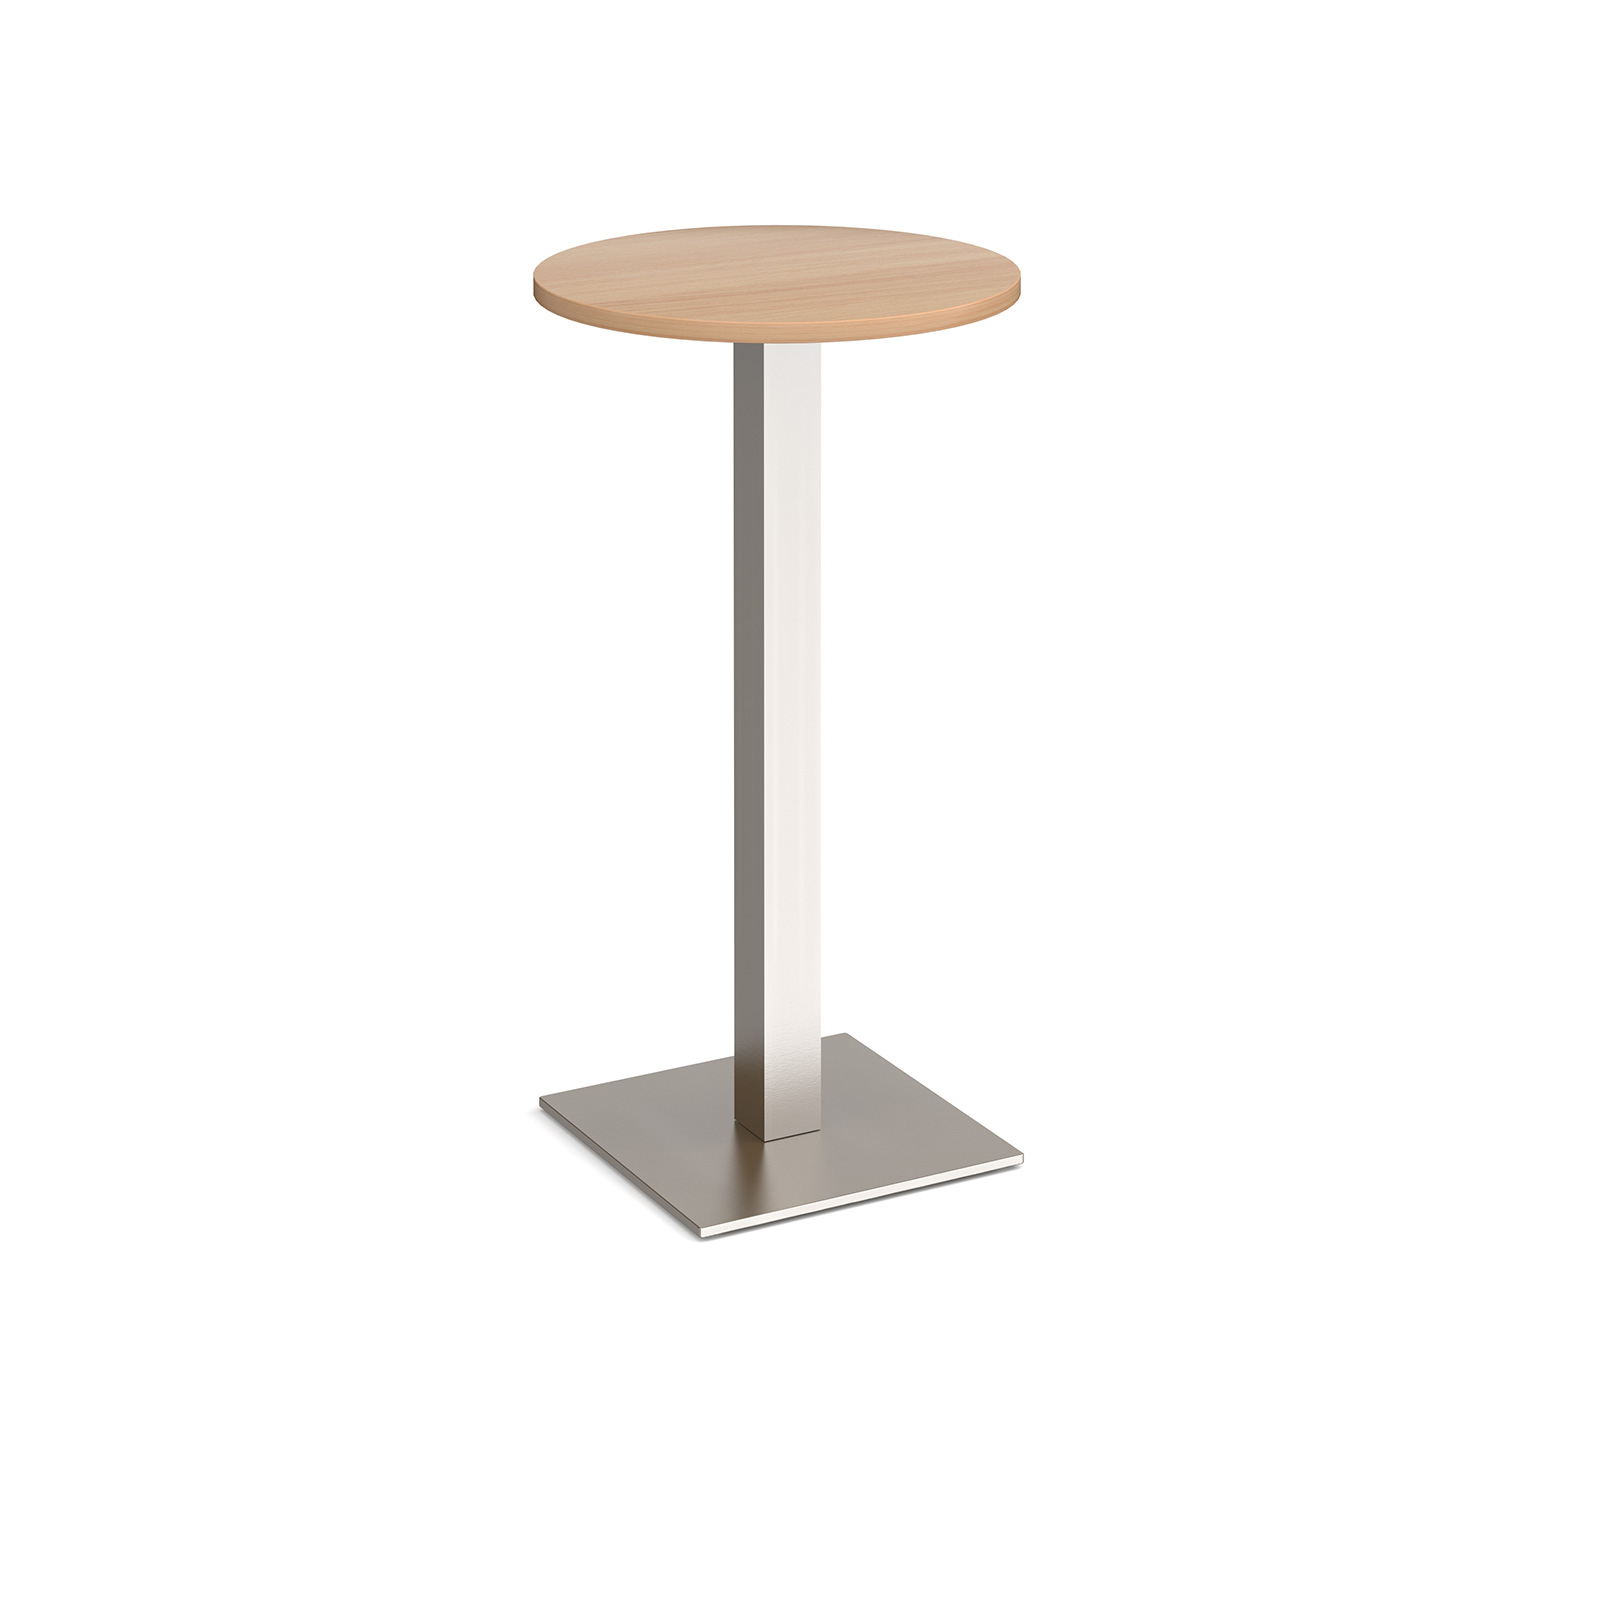 Brescia circular poseur table with flat square base